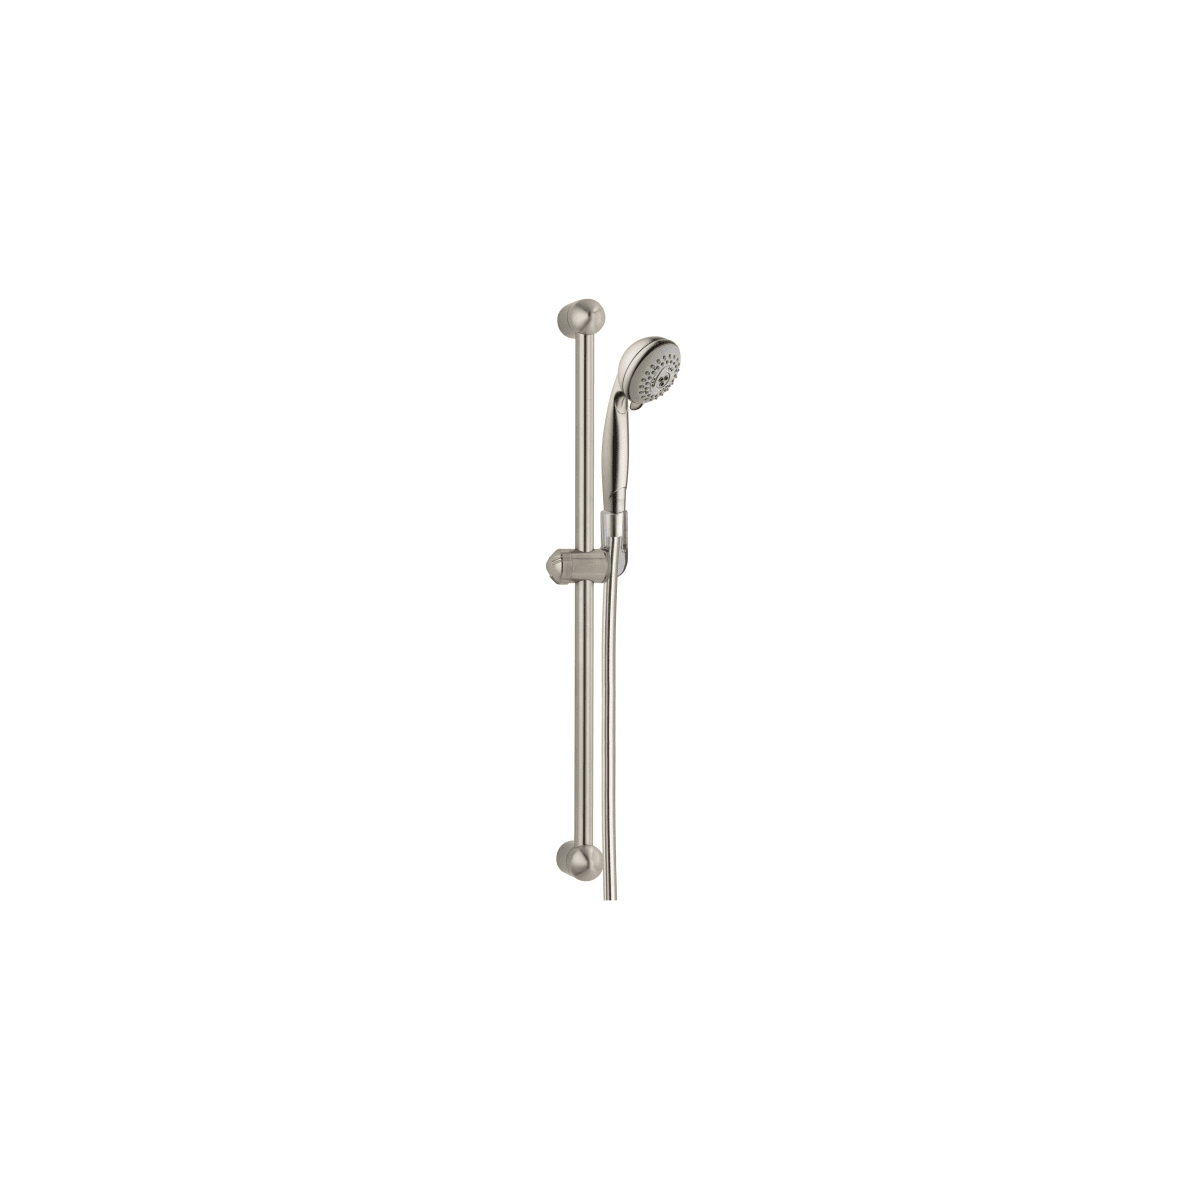 Hansgrohe 06494820 Brushed Nickel Croma E 2 5 Gpm Multi